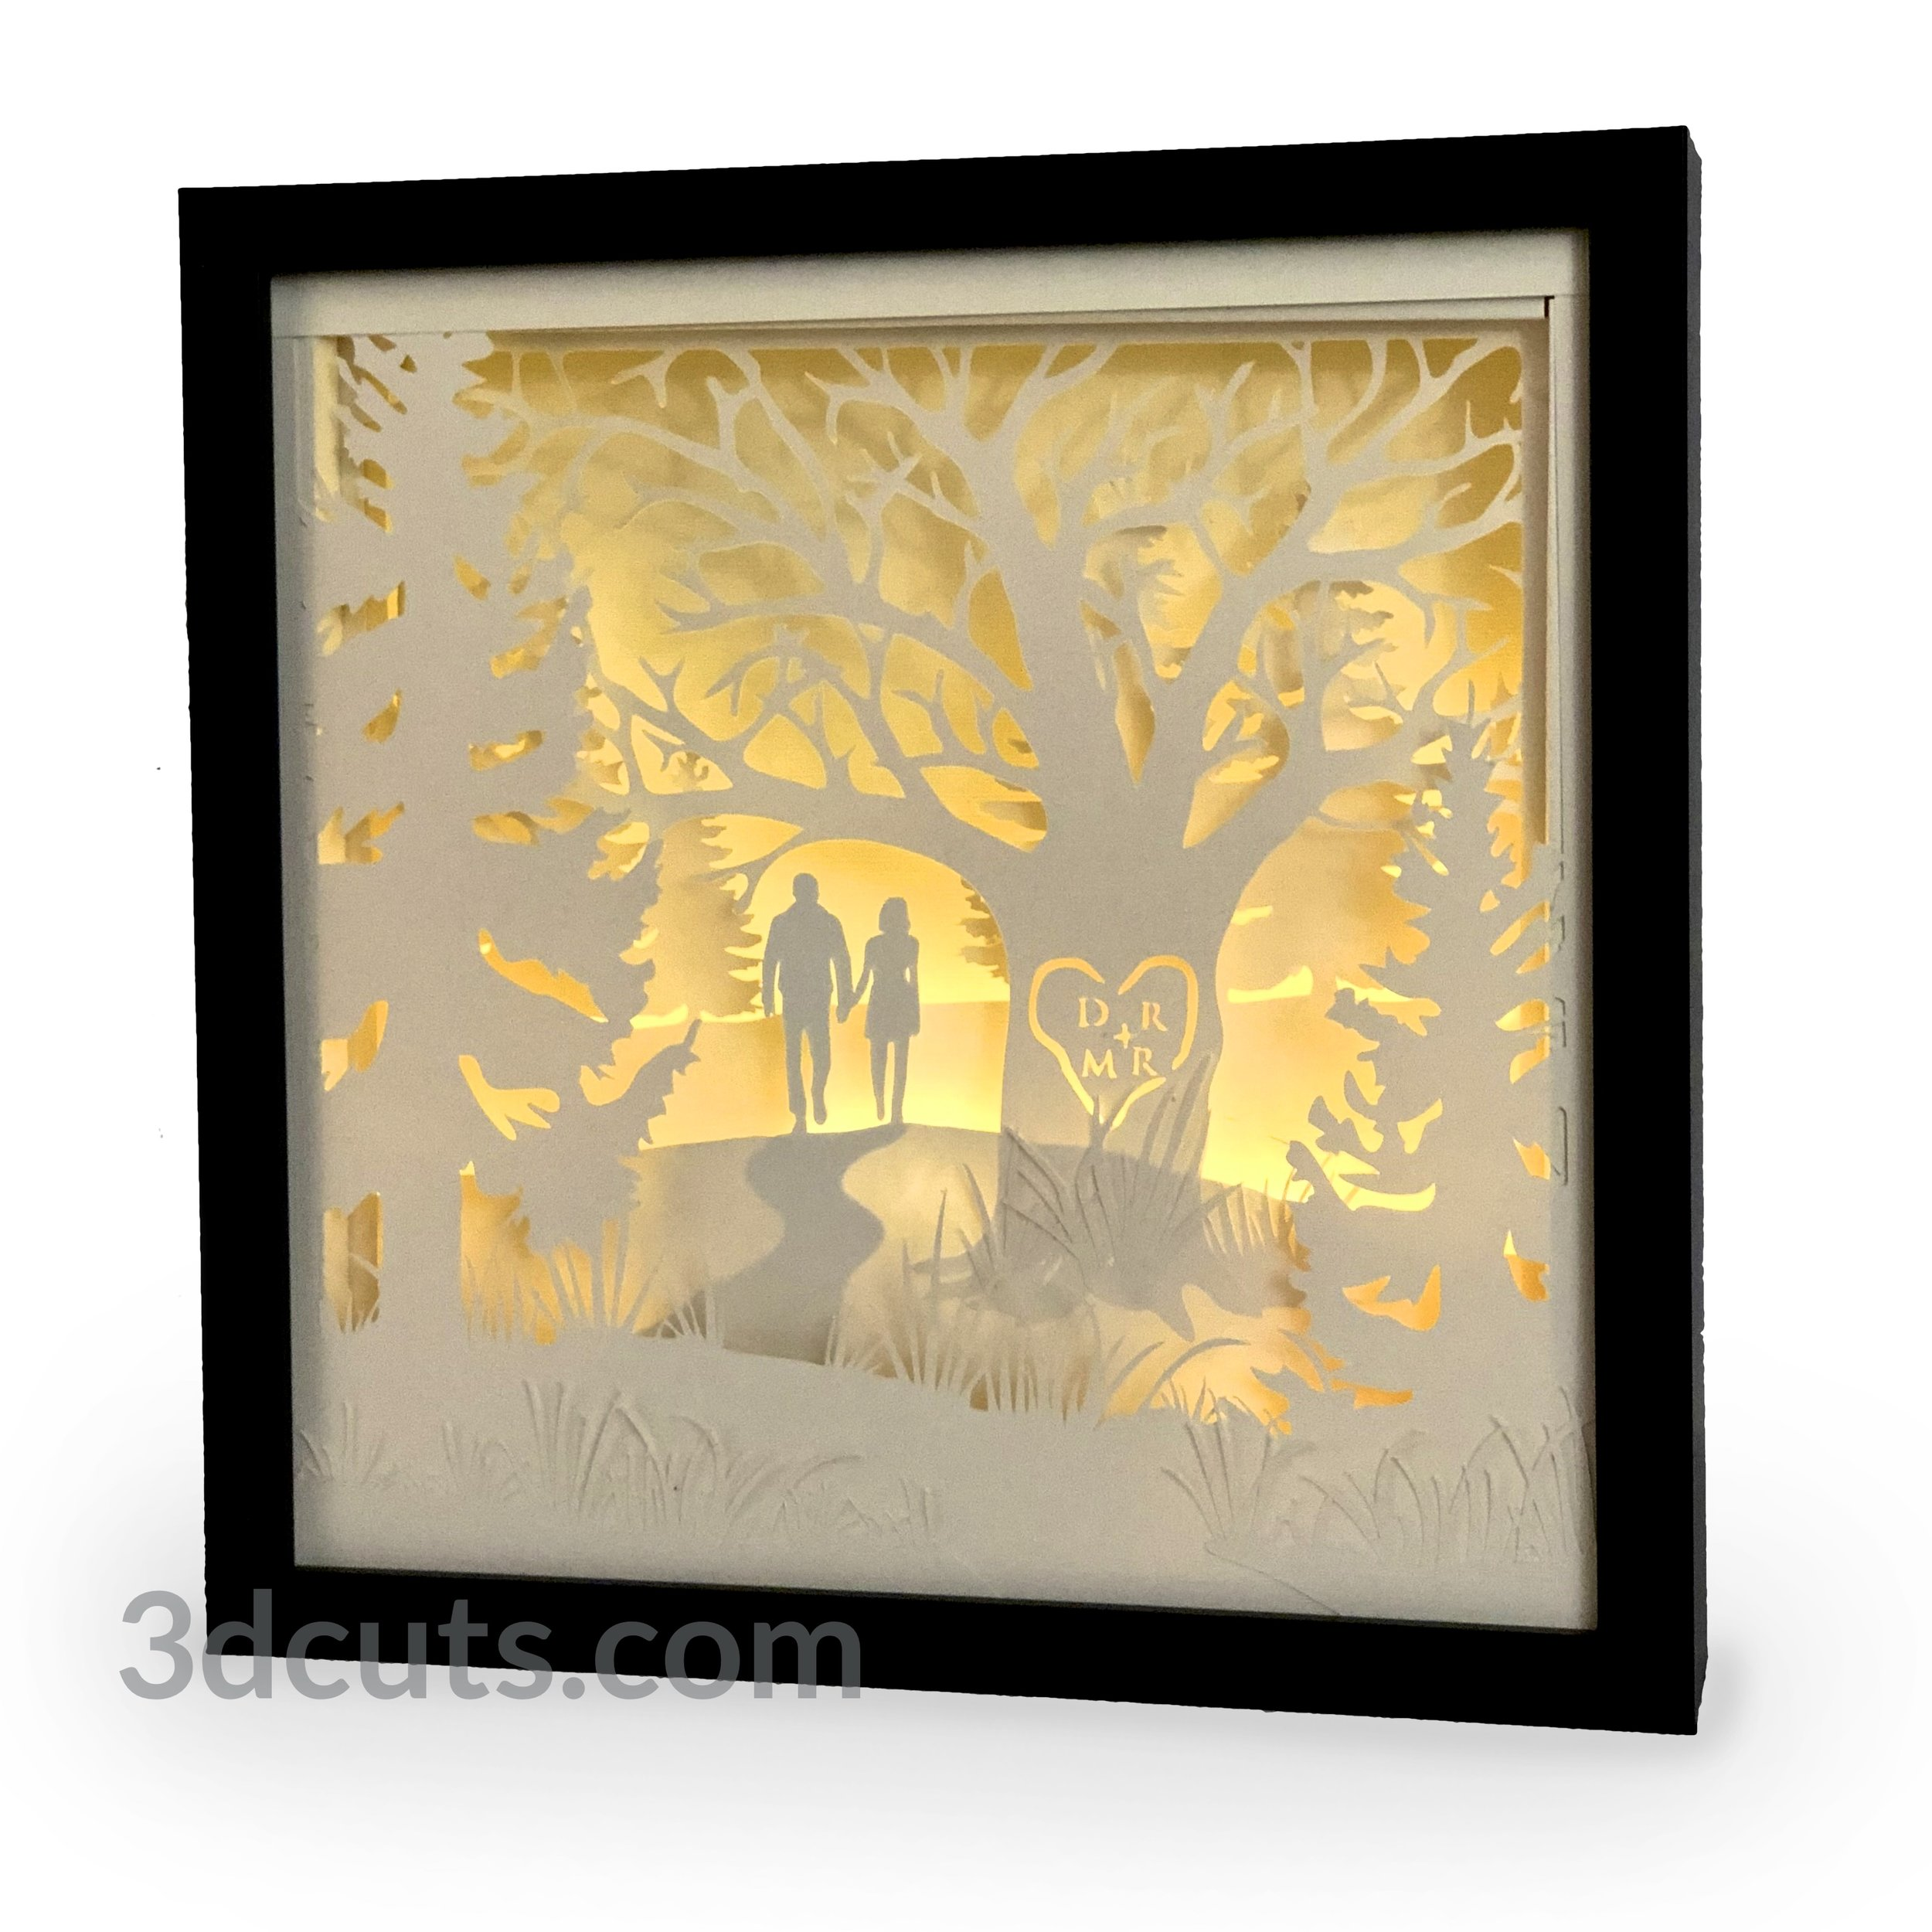 Heart Tree Shadow Box Square, 3DCuts.com, Marji Roy, 3D cutting files in .svg, .dxf, and .pdf formats for use with Silhouette, Cricut and other cutting machines, paper crafting files